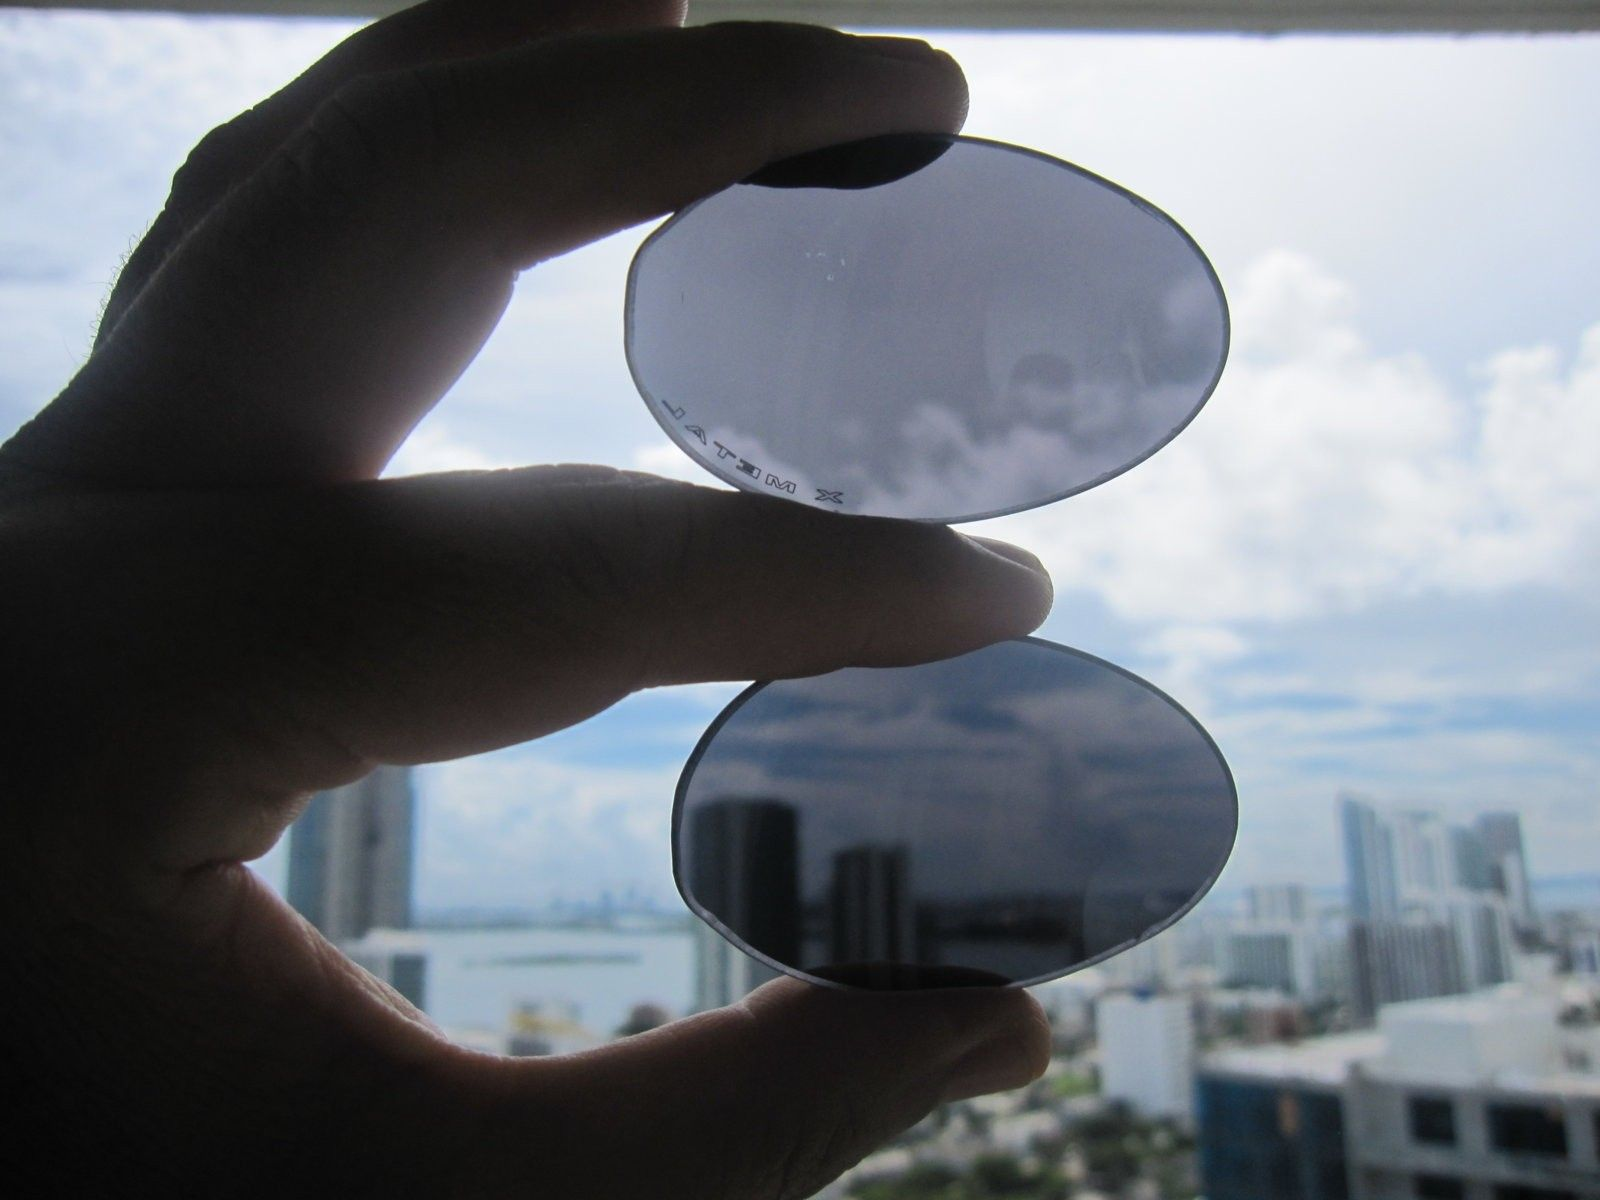 R1 OEM BI lenses - No stress cracks - GONE - IMG_5626.JPG